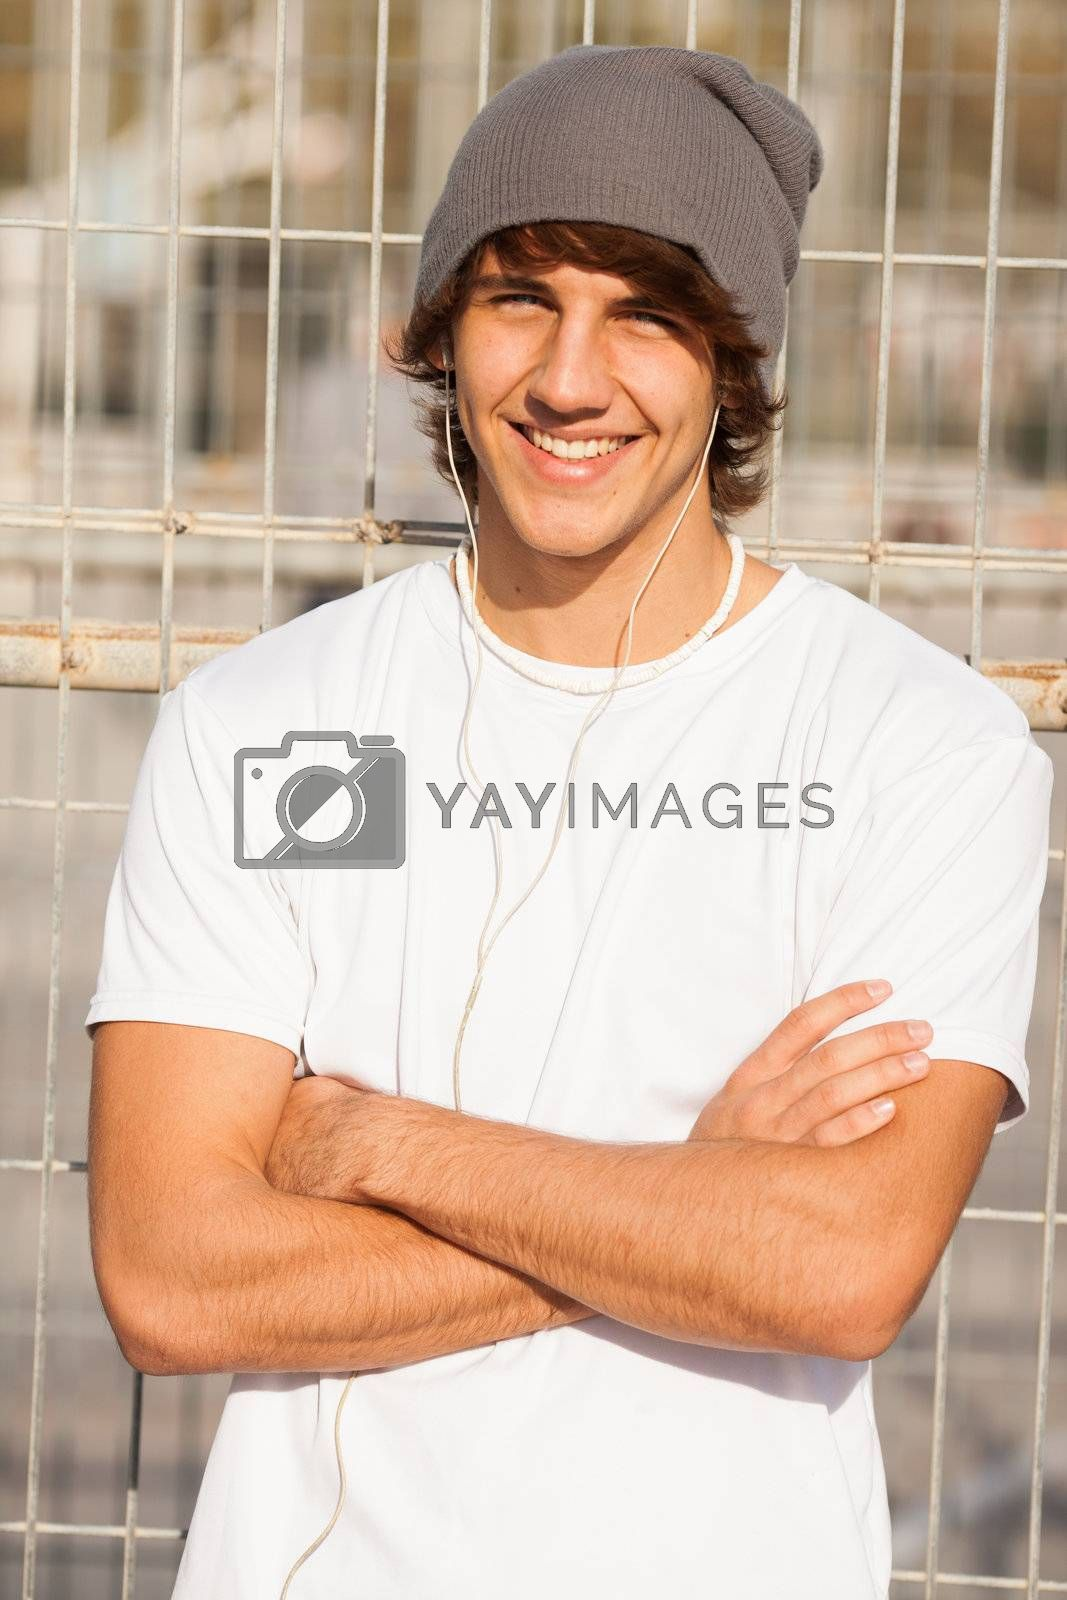 Royalty free image of young handsome man portrait by Lcrespi